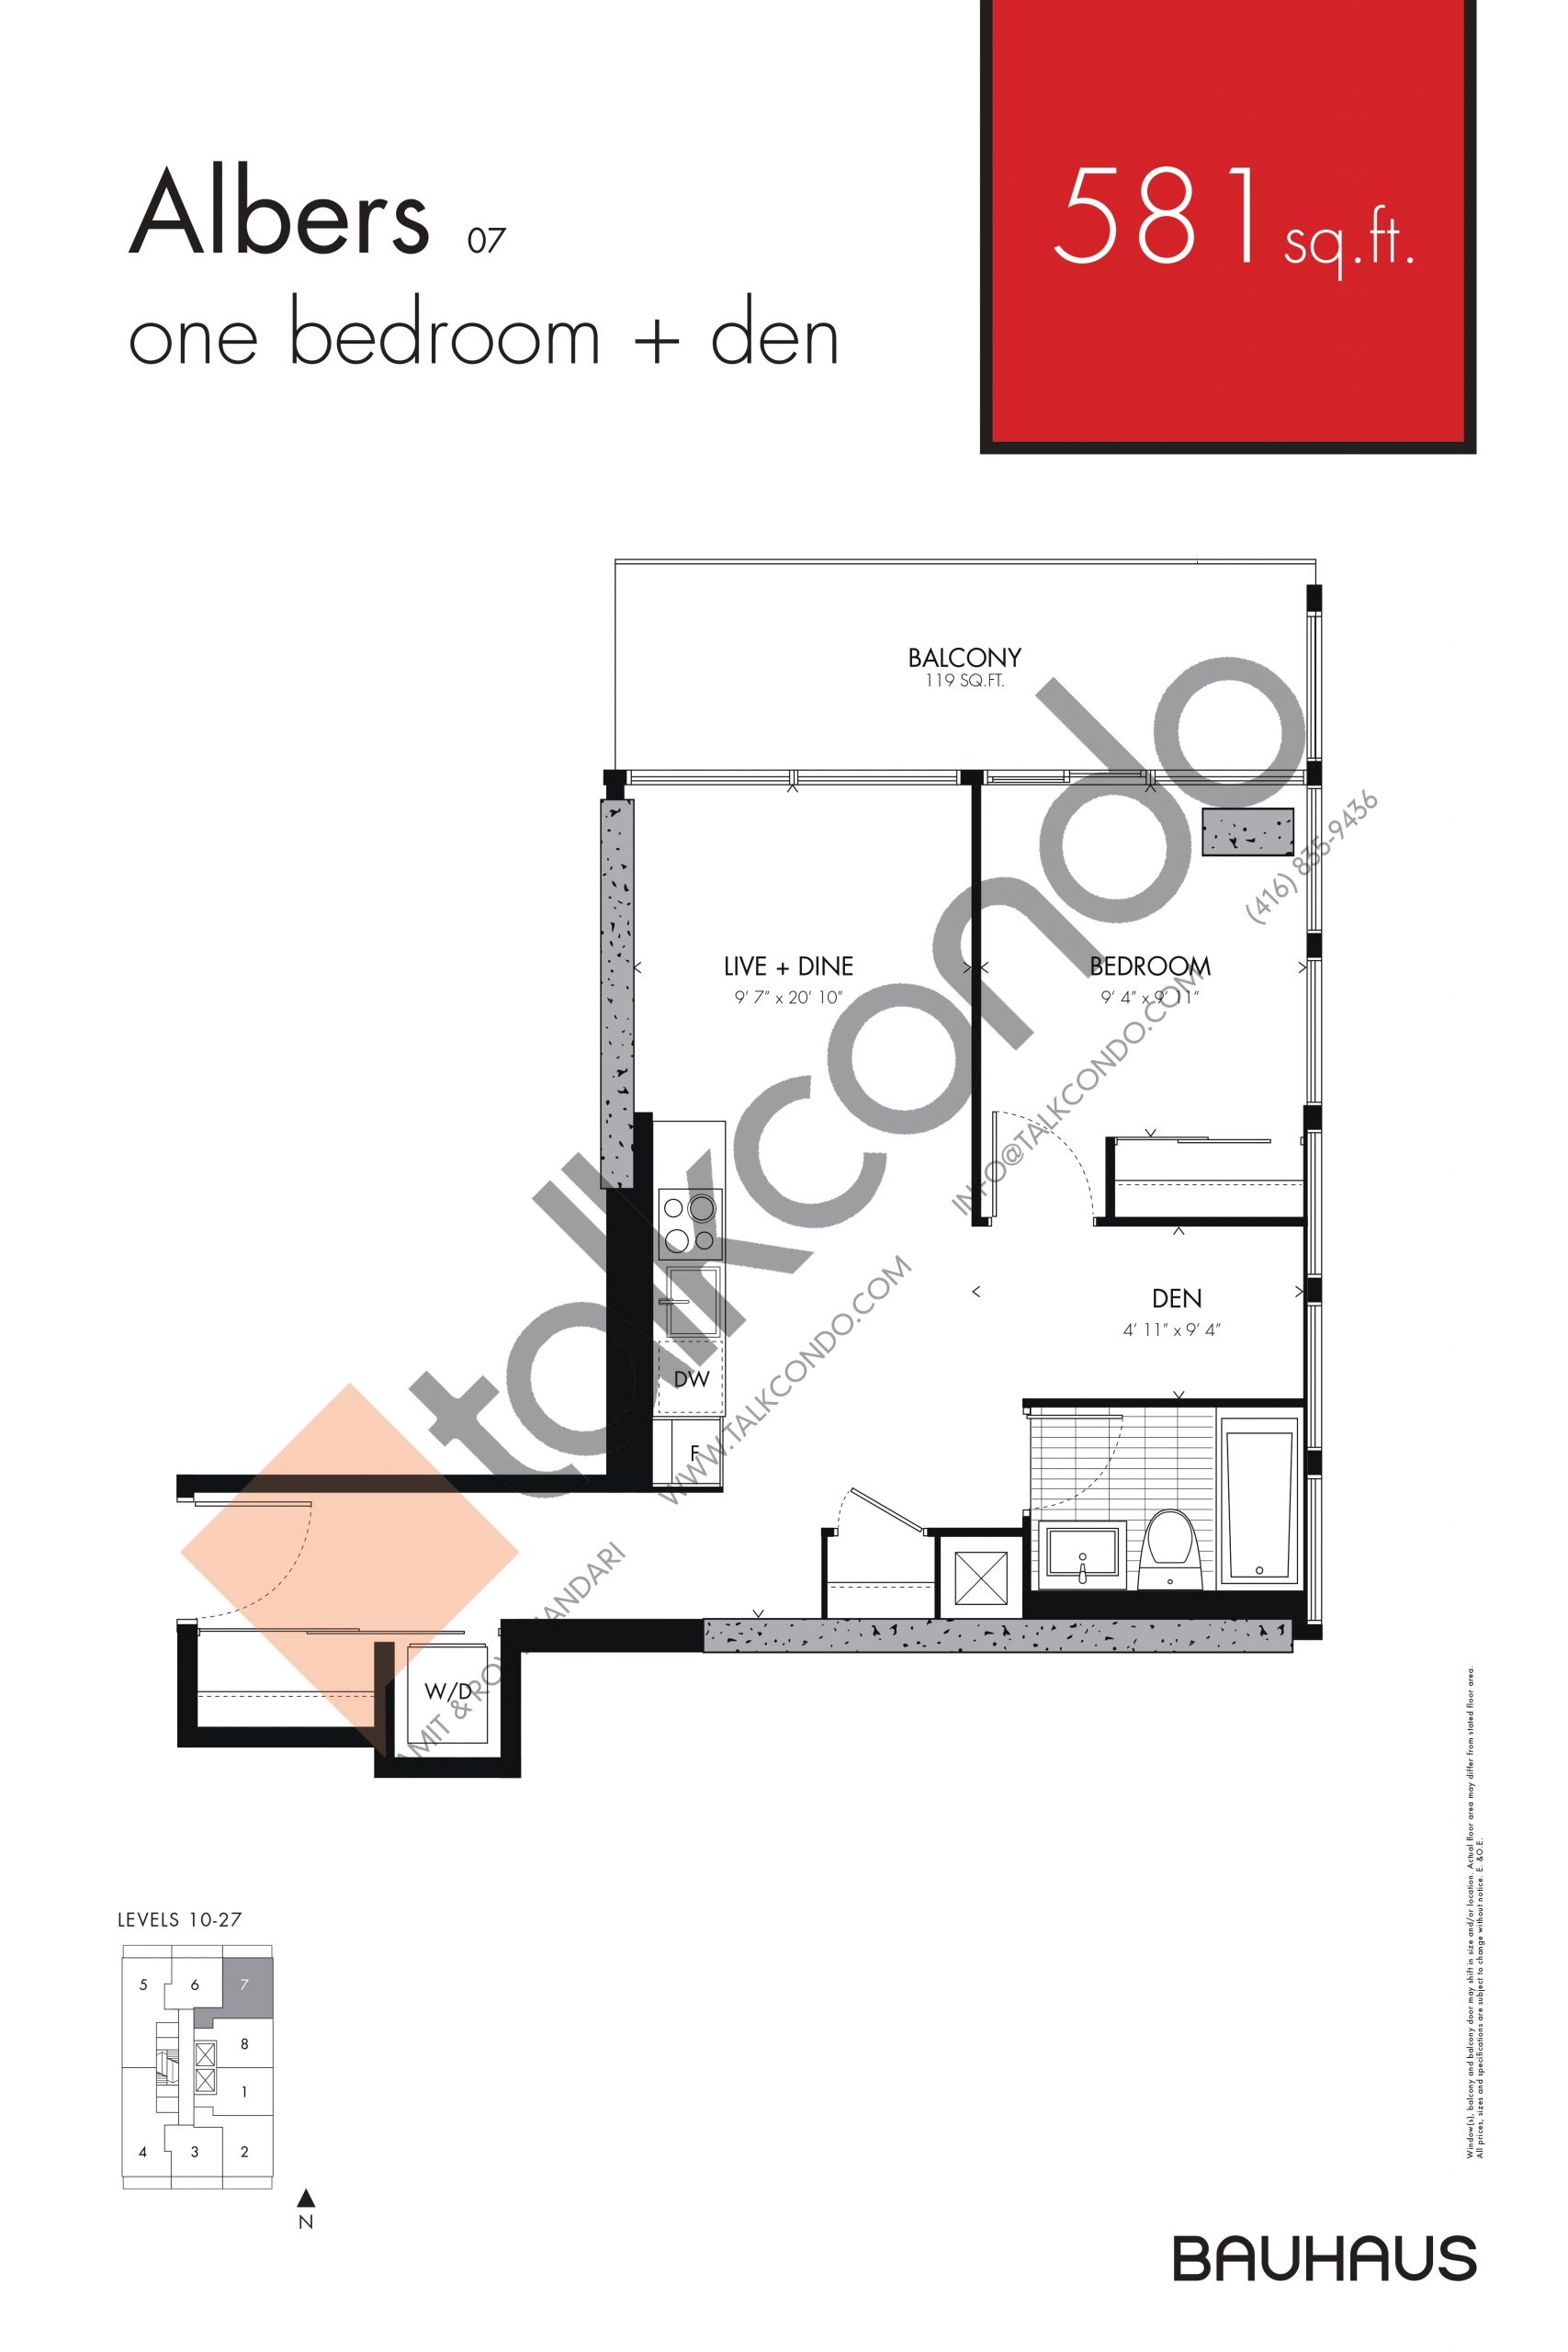 Albers Floor Plan at Bauhaus Condos - 581 sq.ft